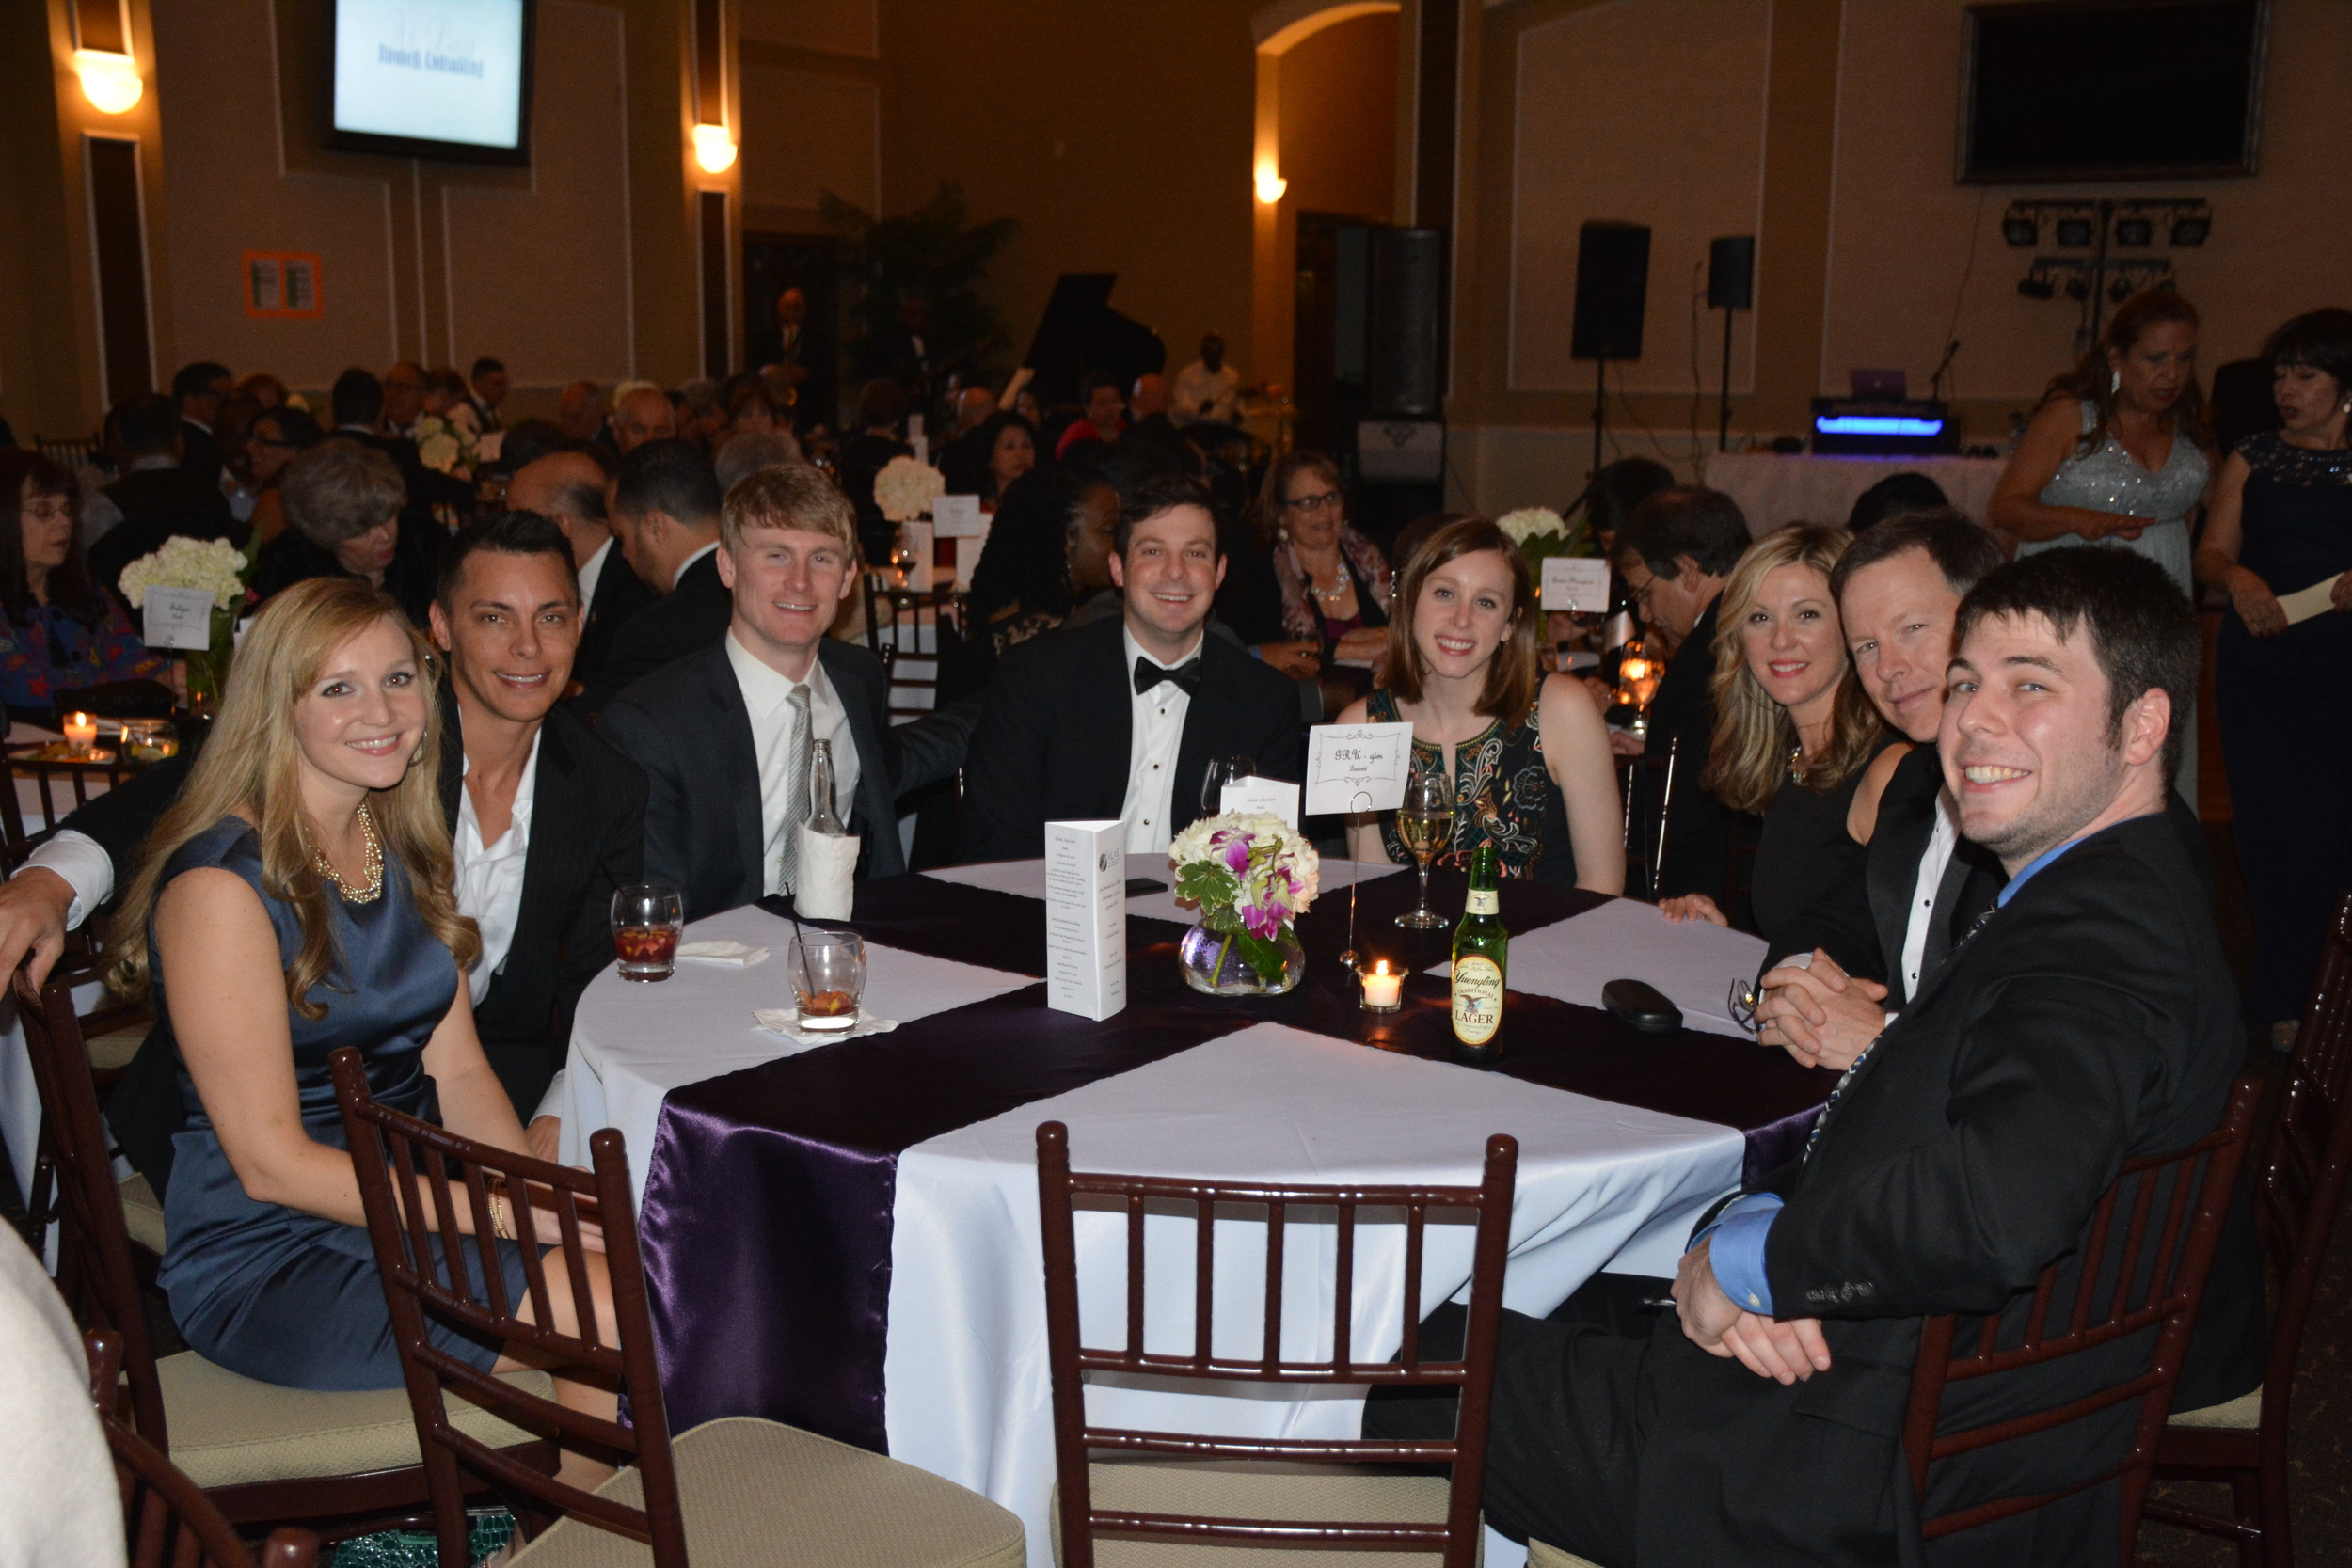 ALAS Board Member Eric Garber (right) Enjoys Gala Night with Friends and Community Members